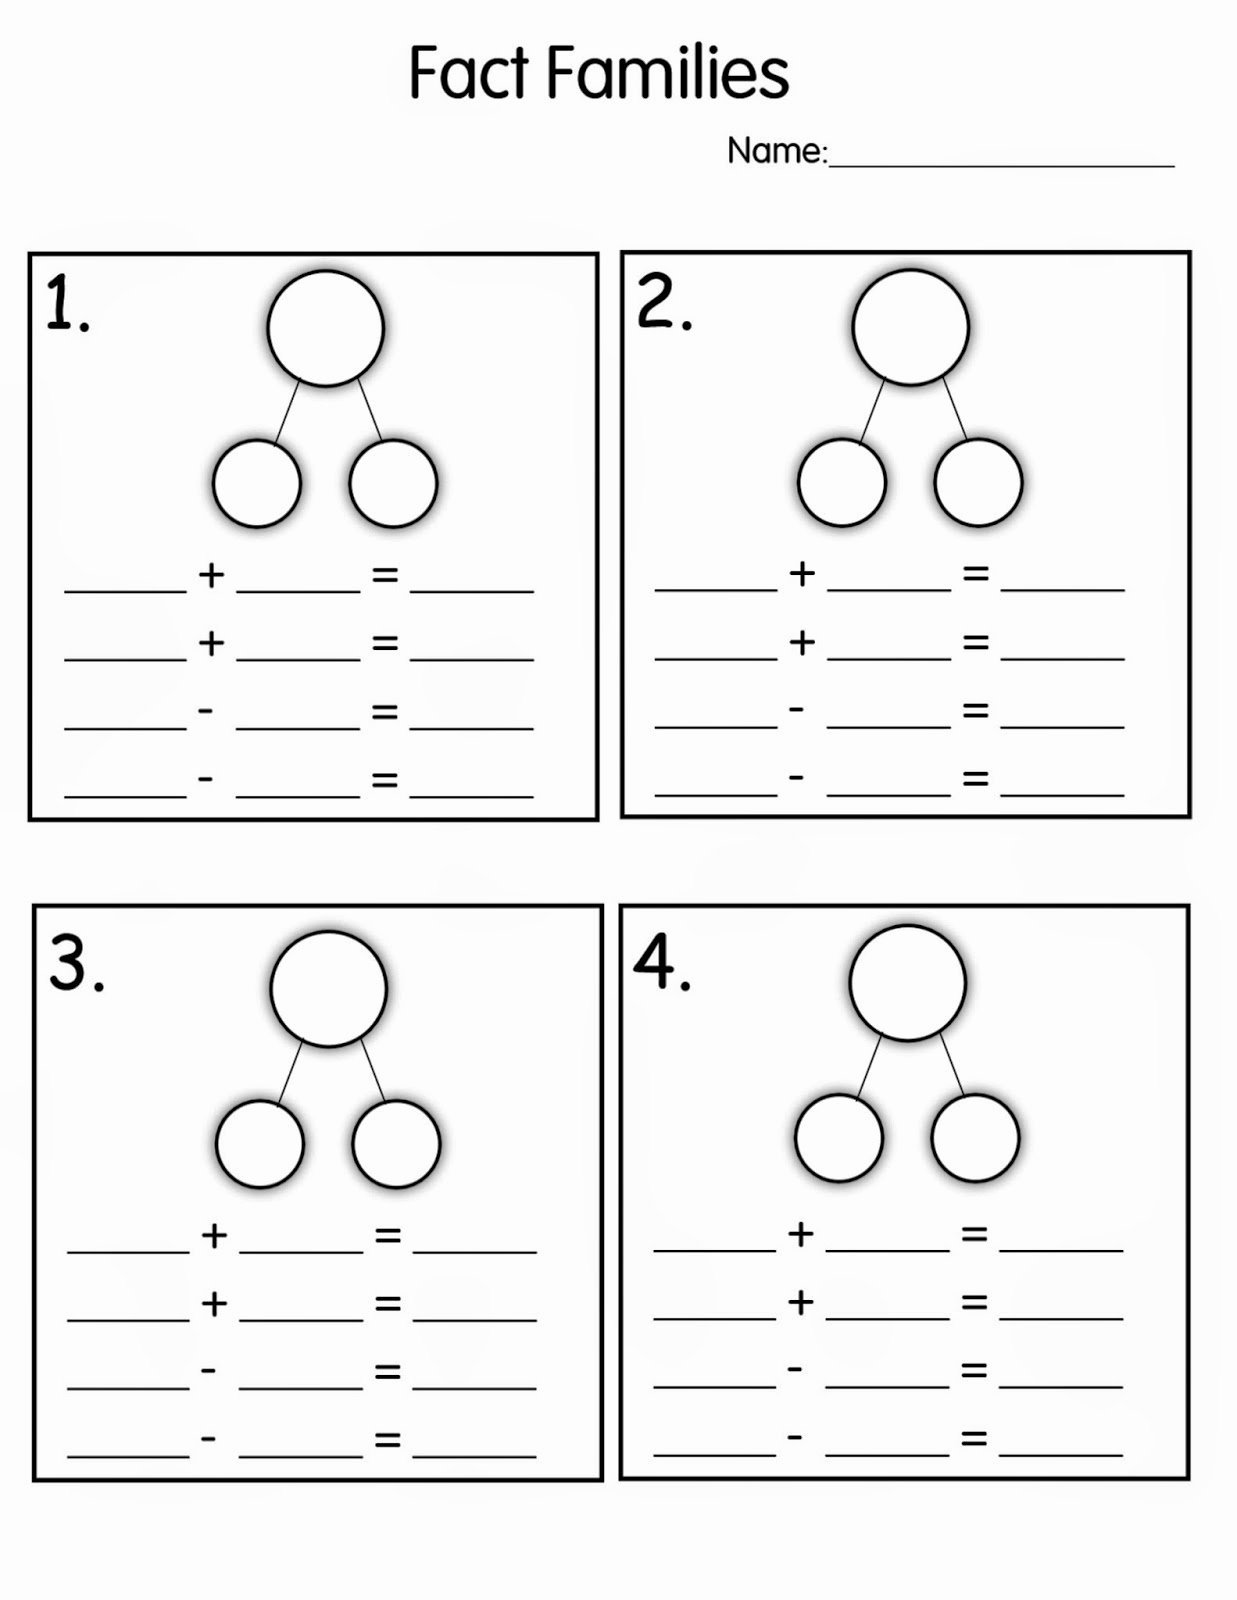 Fact Family Multiplication Worksheets top Fact Family Worksheets Math Families Houses Worksheet Kiddo